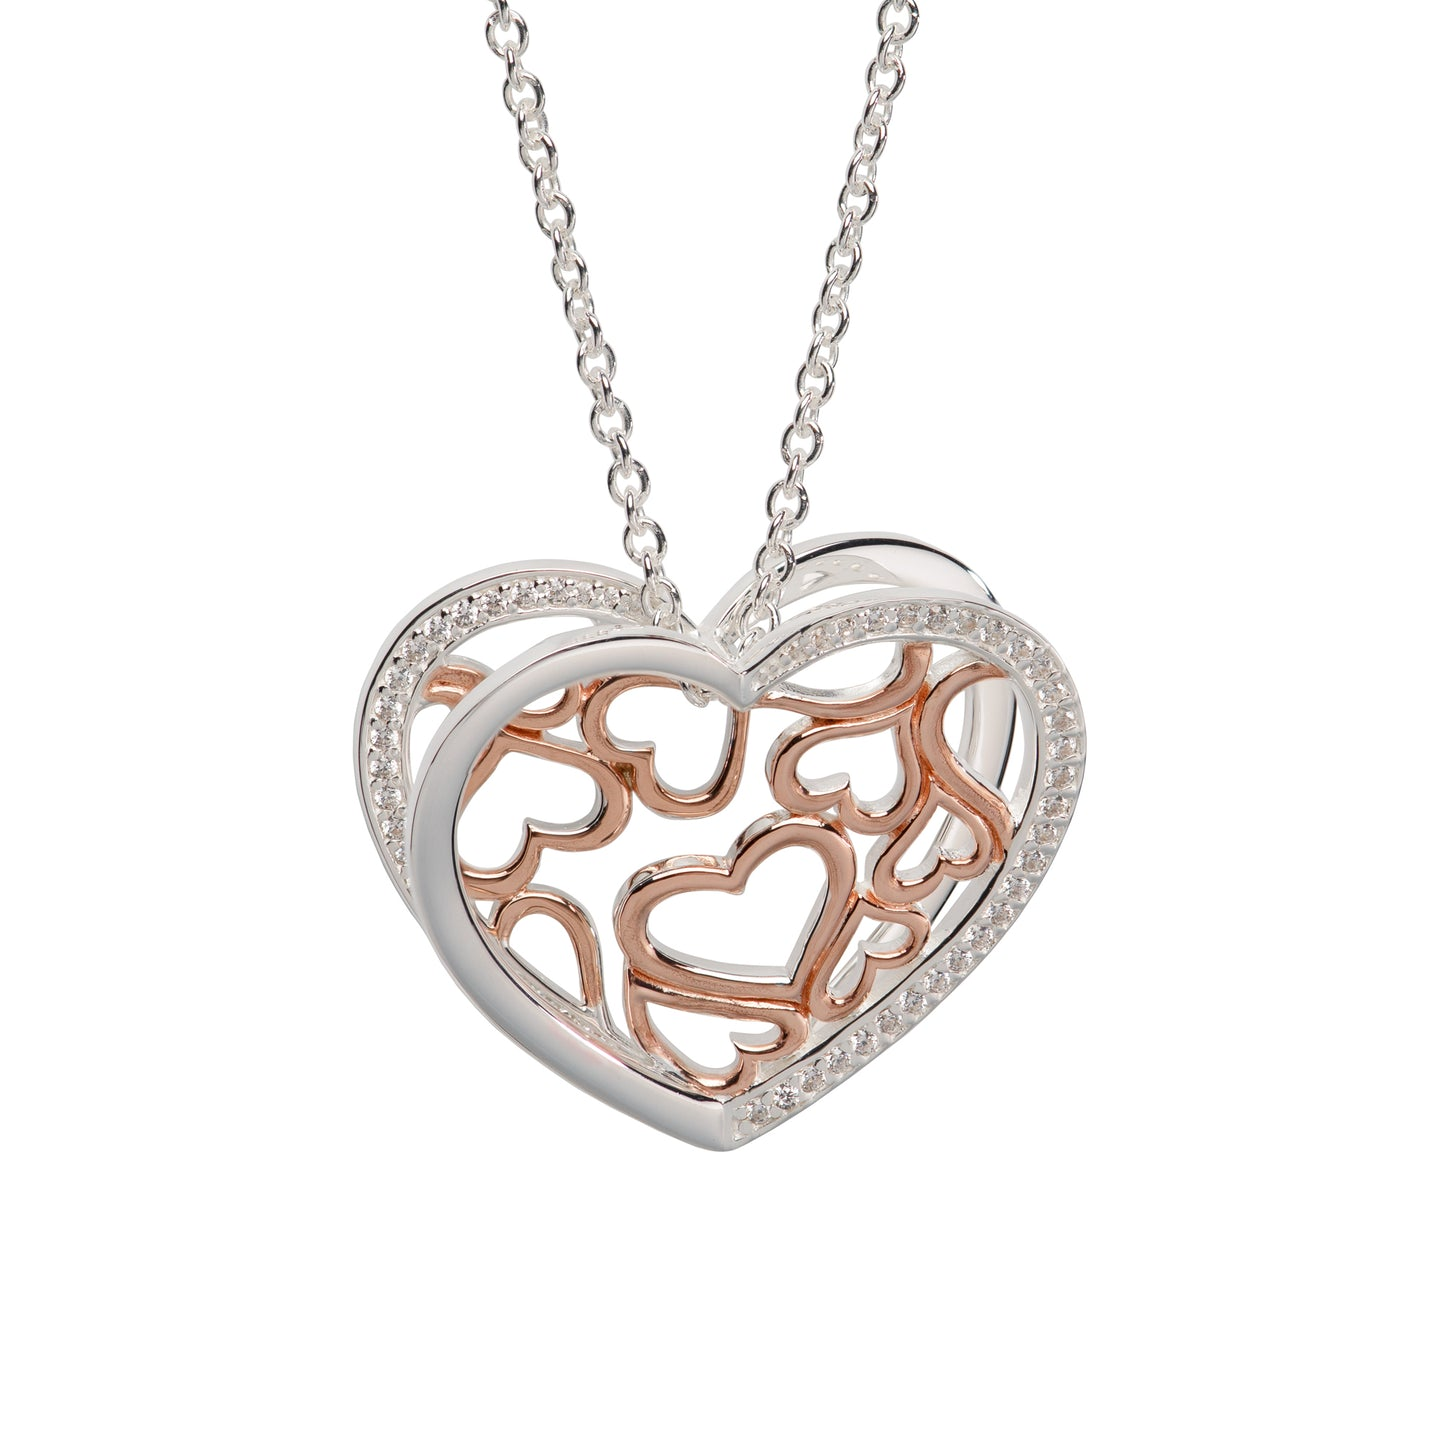 3D Heart Pendant with Chain MK-782